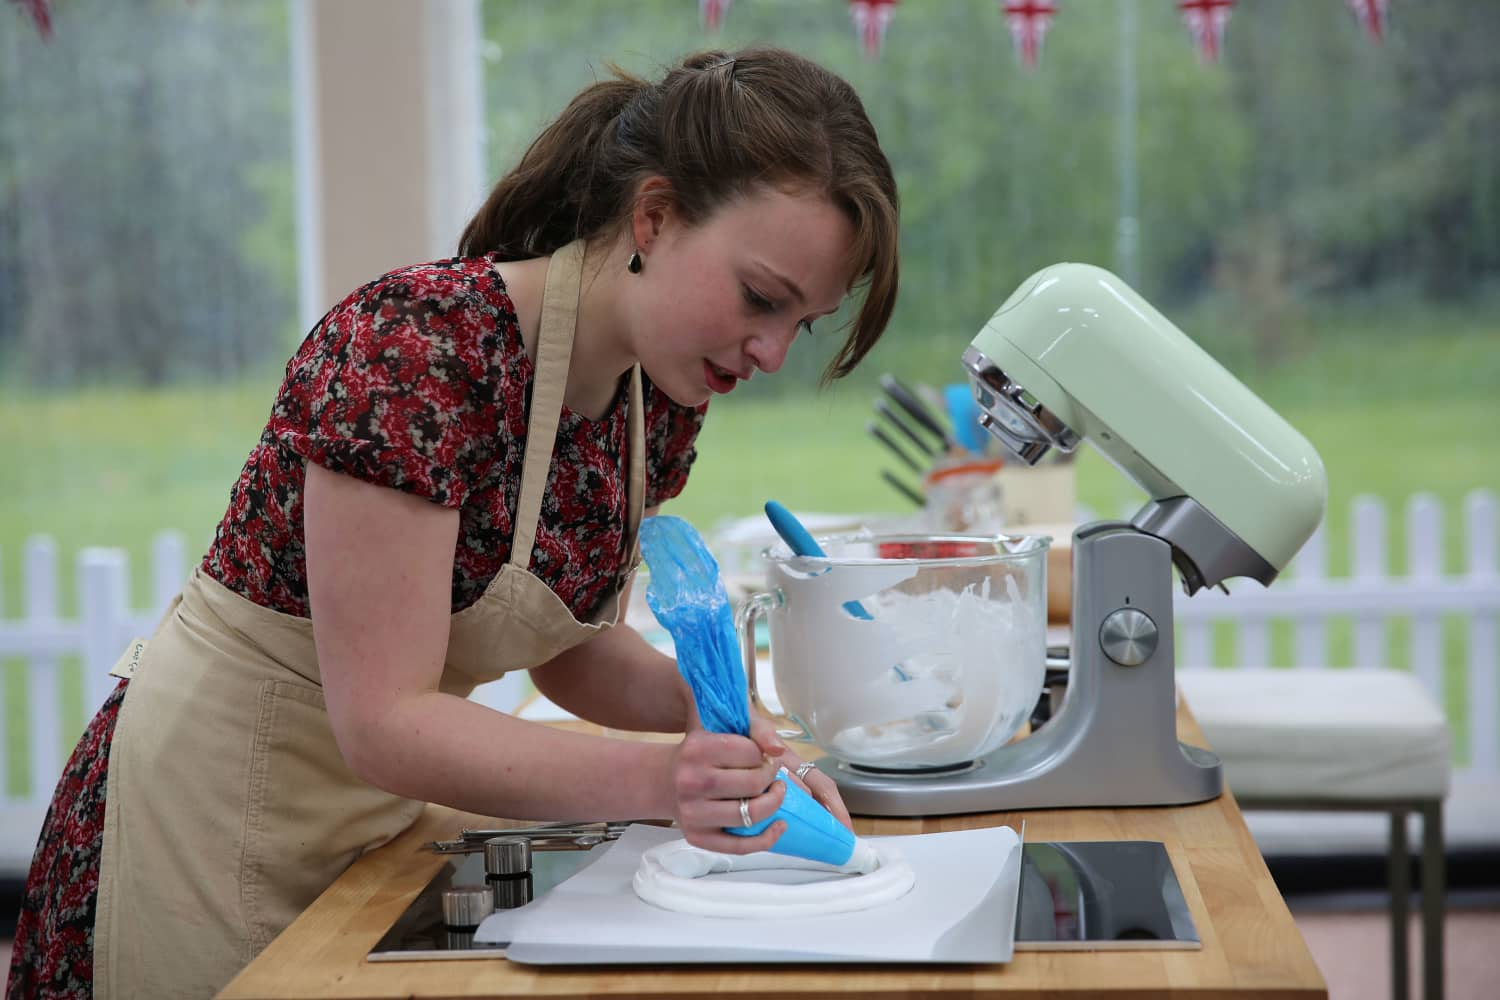 The Great British Bake Off Is Secretly a Show About Time ...